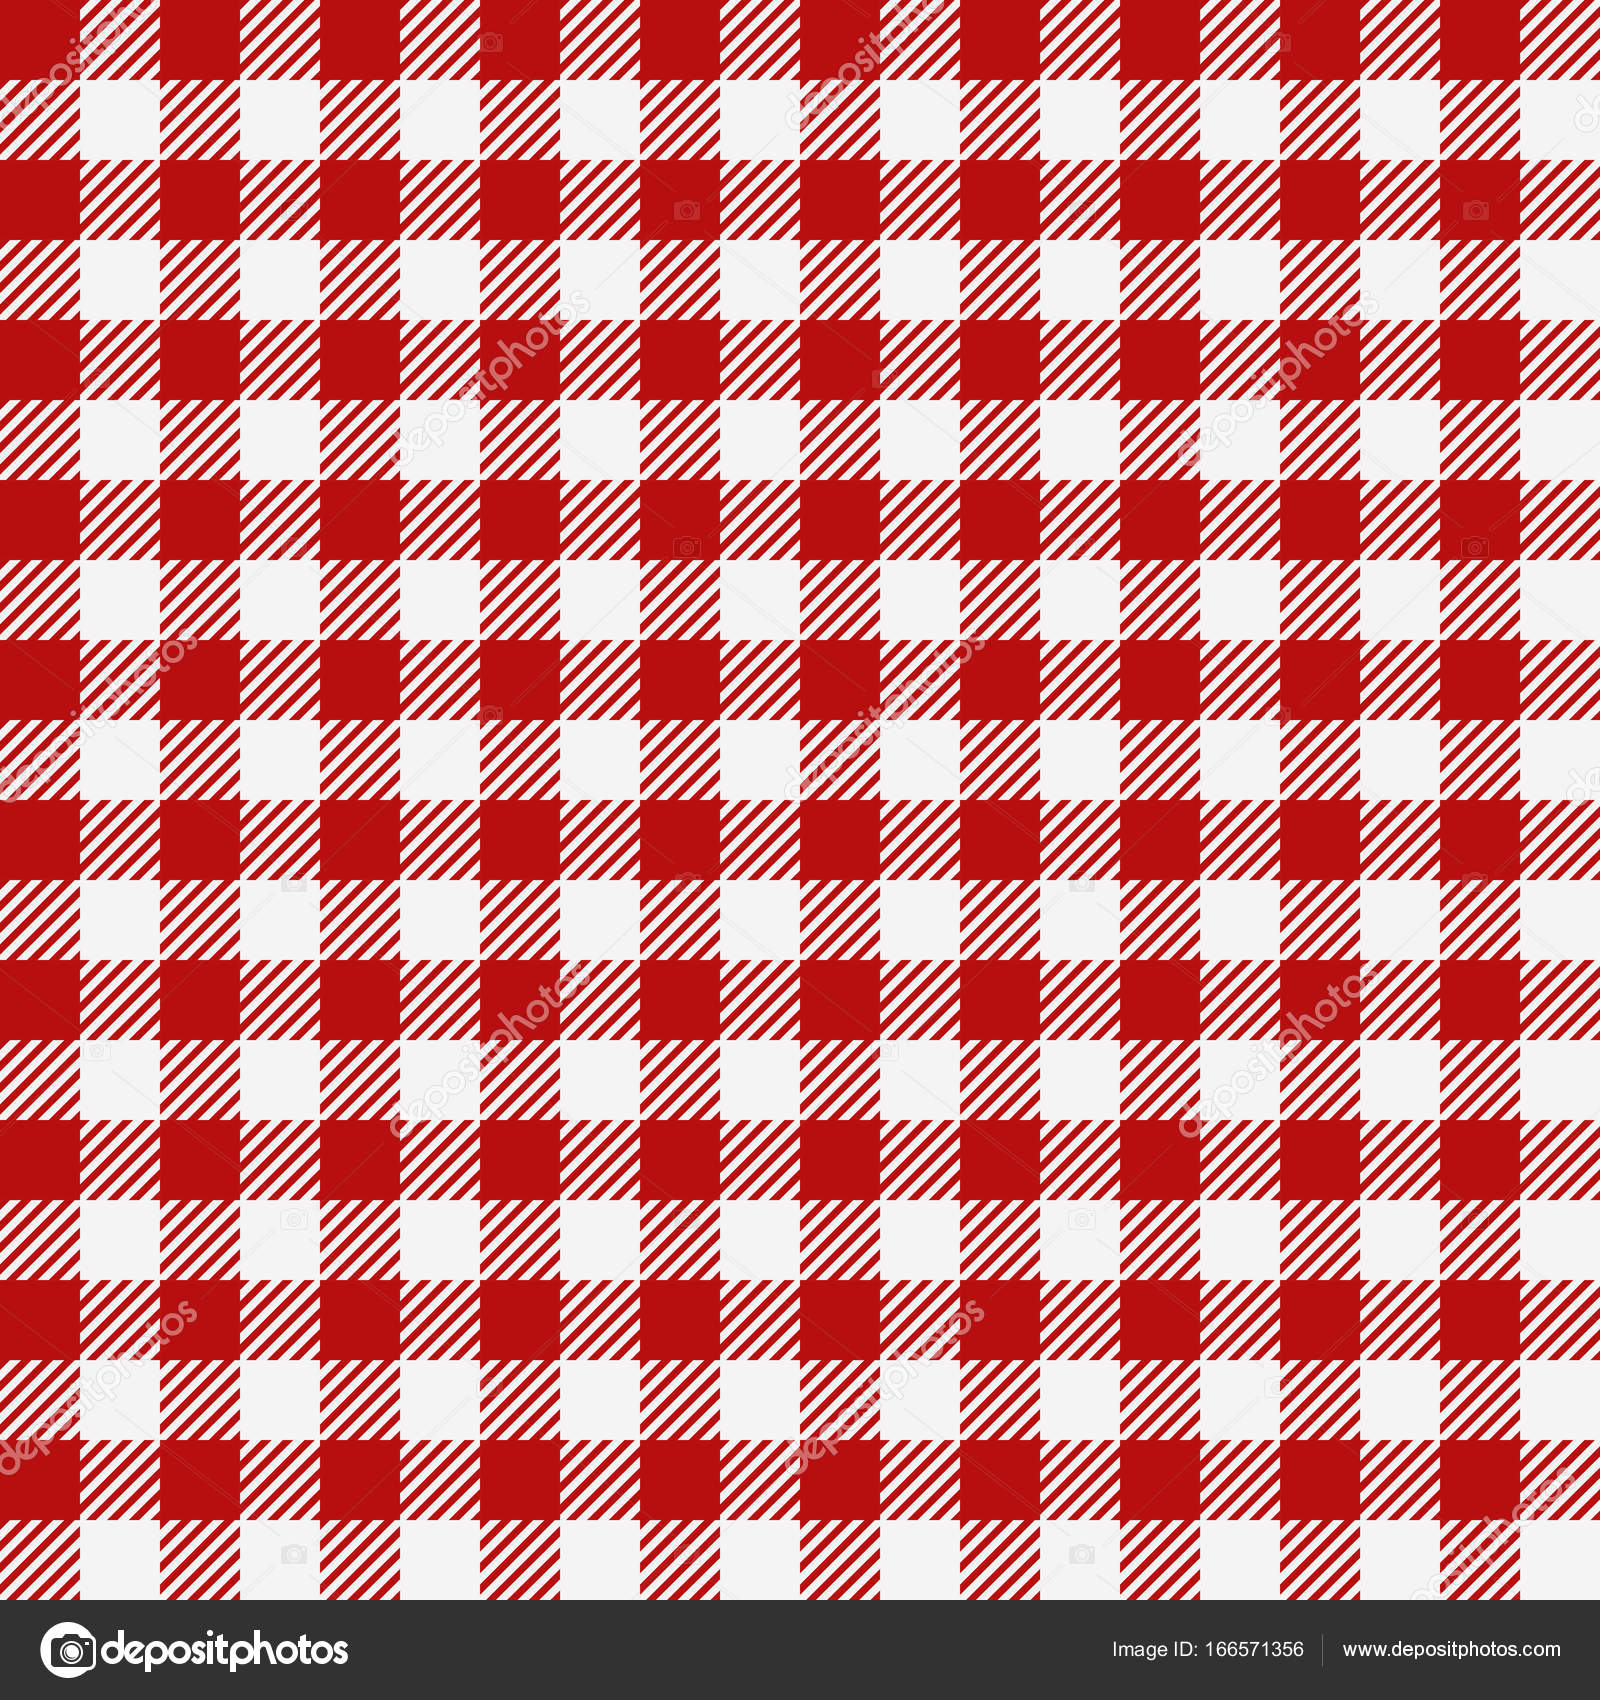 Red Checkered Texture, Restaurant Seamless Pattern, Kitchen Tablecloth  Background, Plaid Wallpaper U2014 Stock